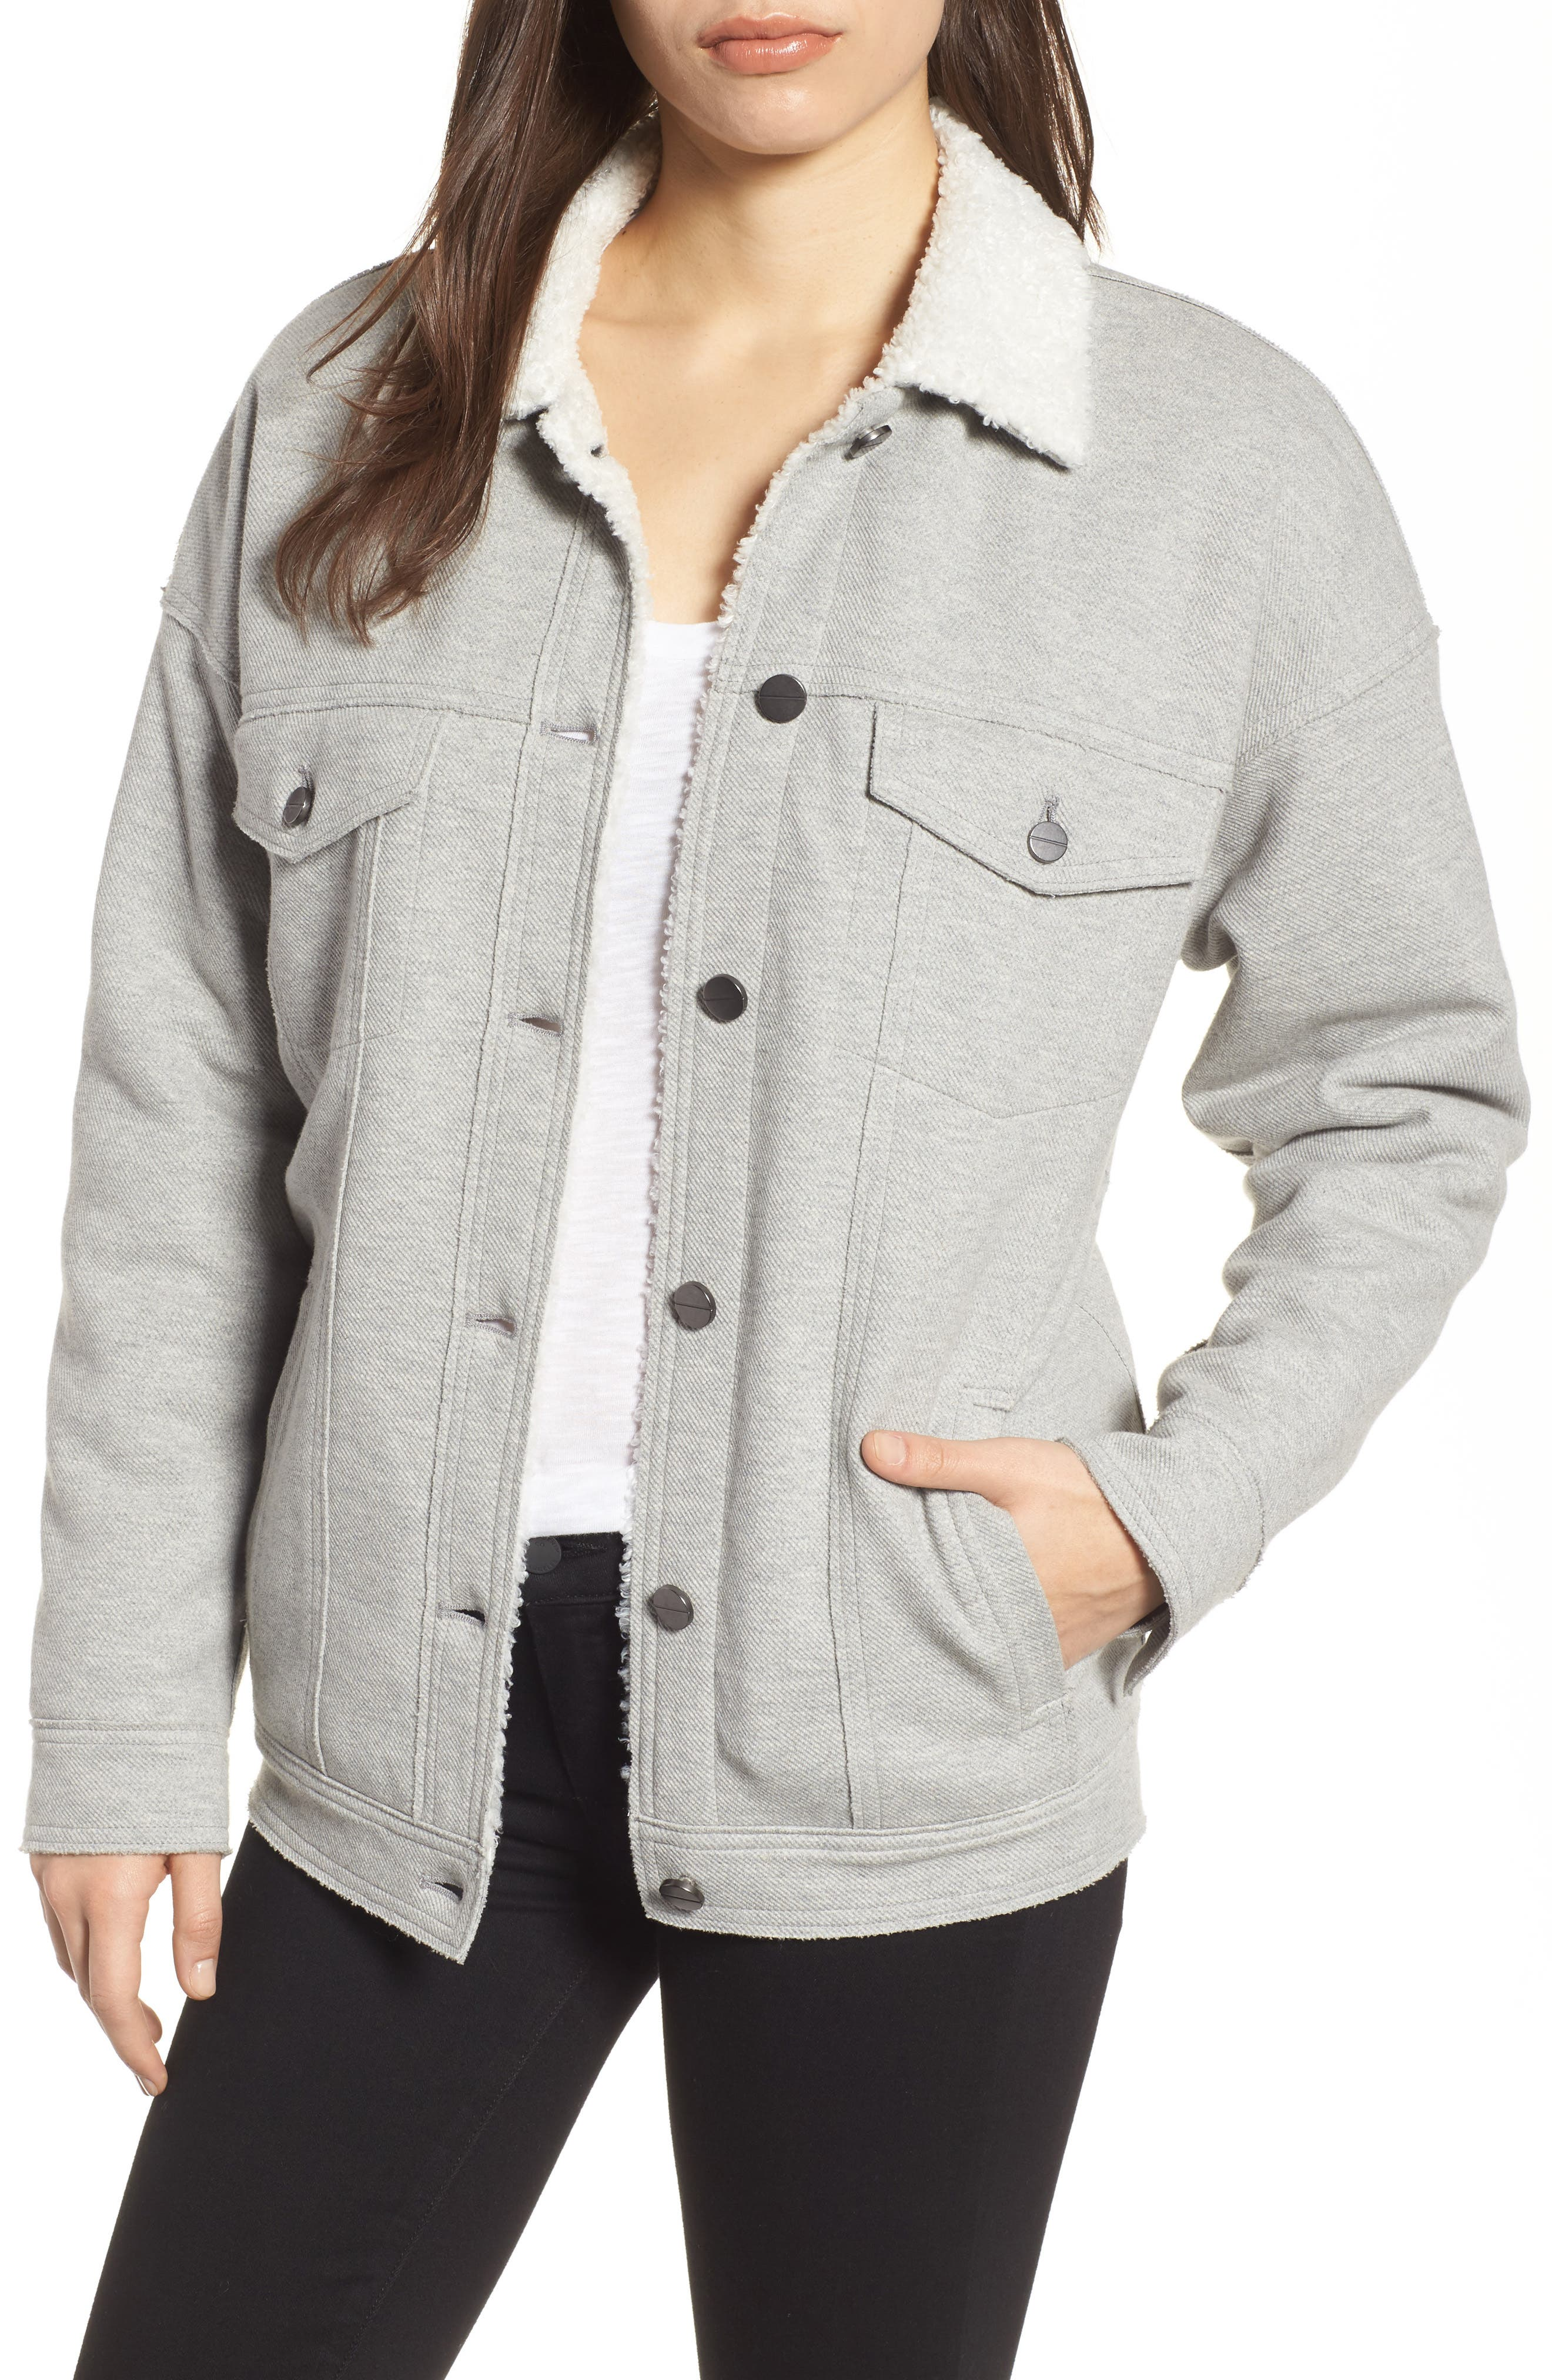 Alternate Image 1 Selected - Kenneth Cole New York Knit Trucker Jacket